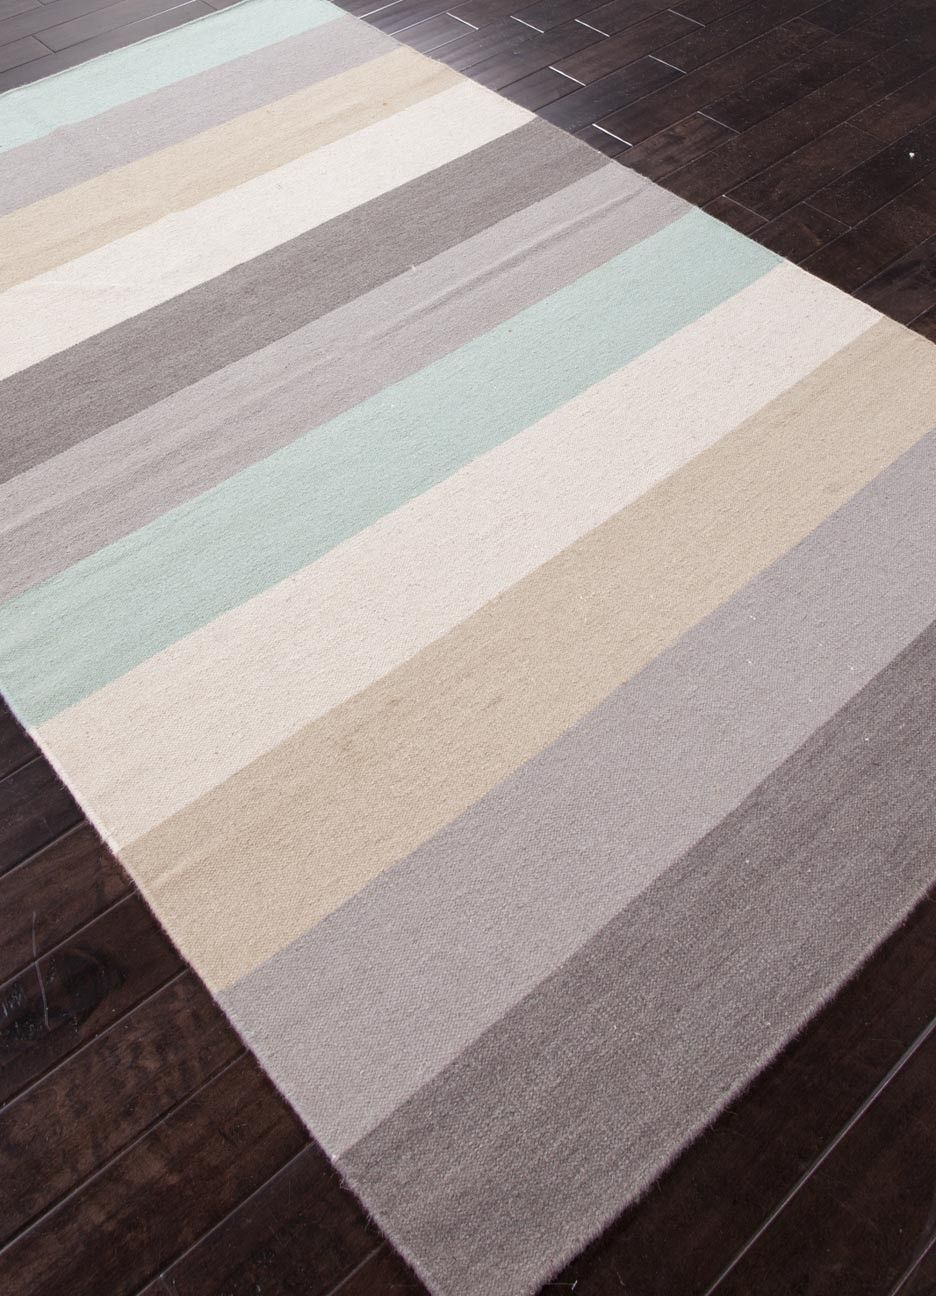 Wide Beach Sand and Aqua Striped Rug | Beach Living | Pinterest ...